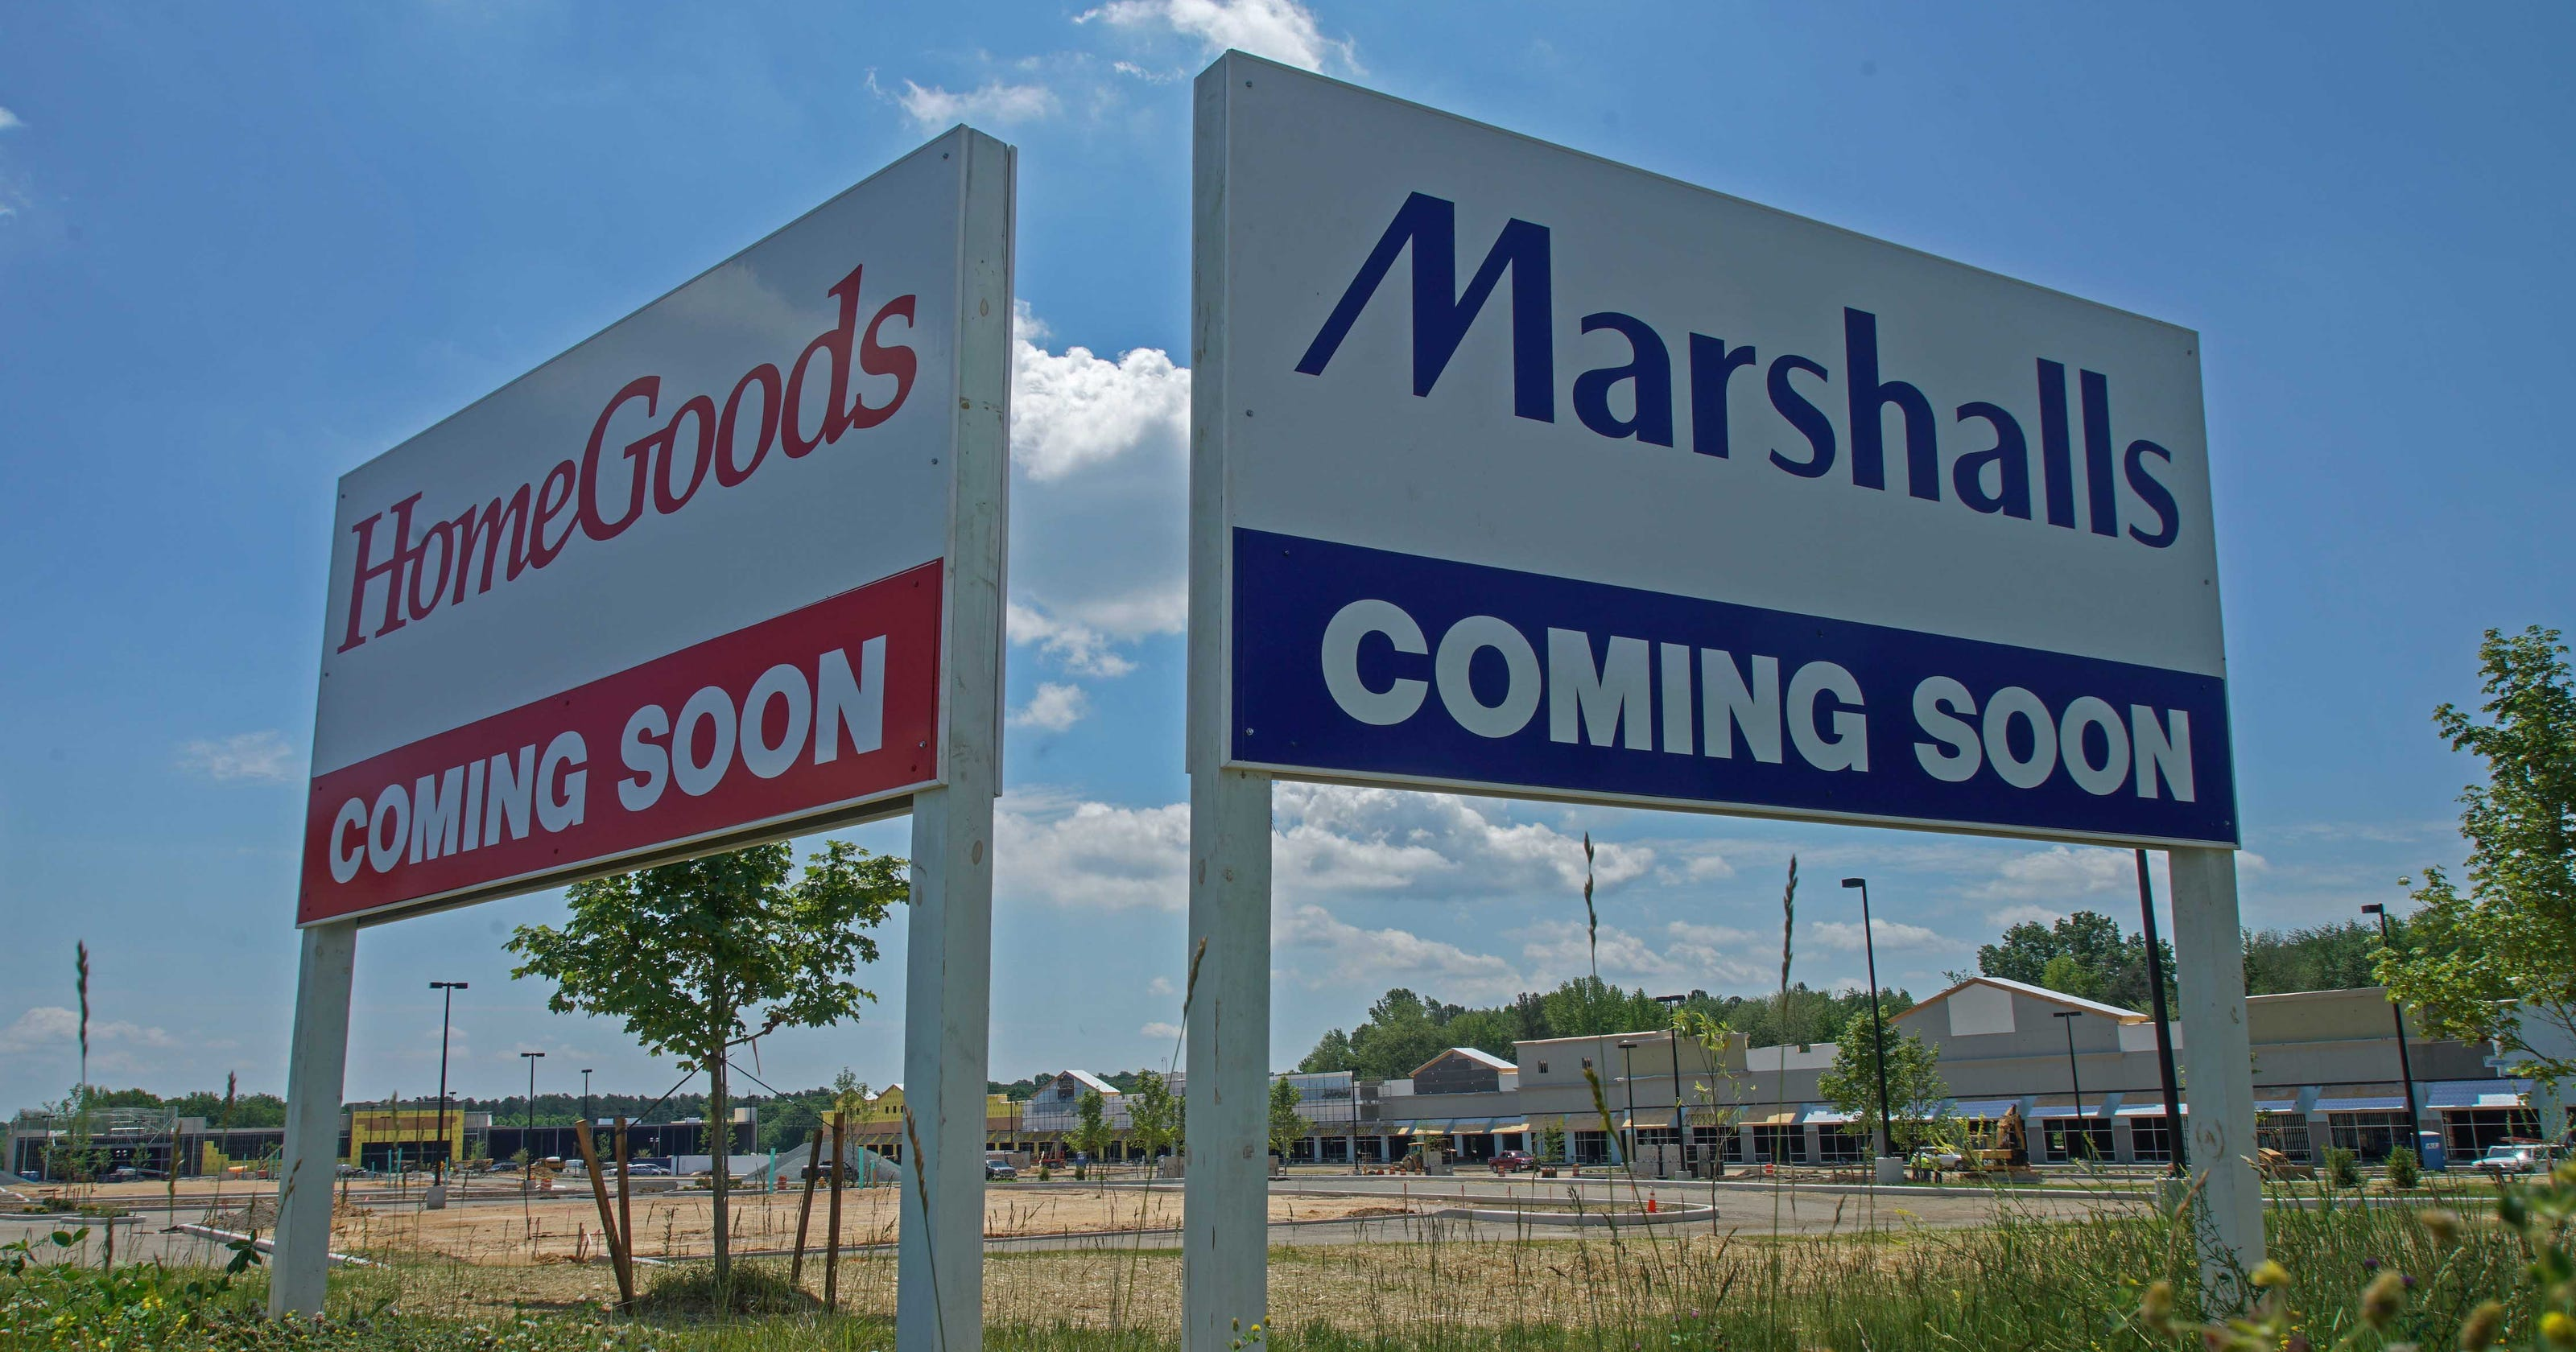 Christiana Marshalls/Home Goods to open